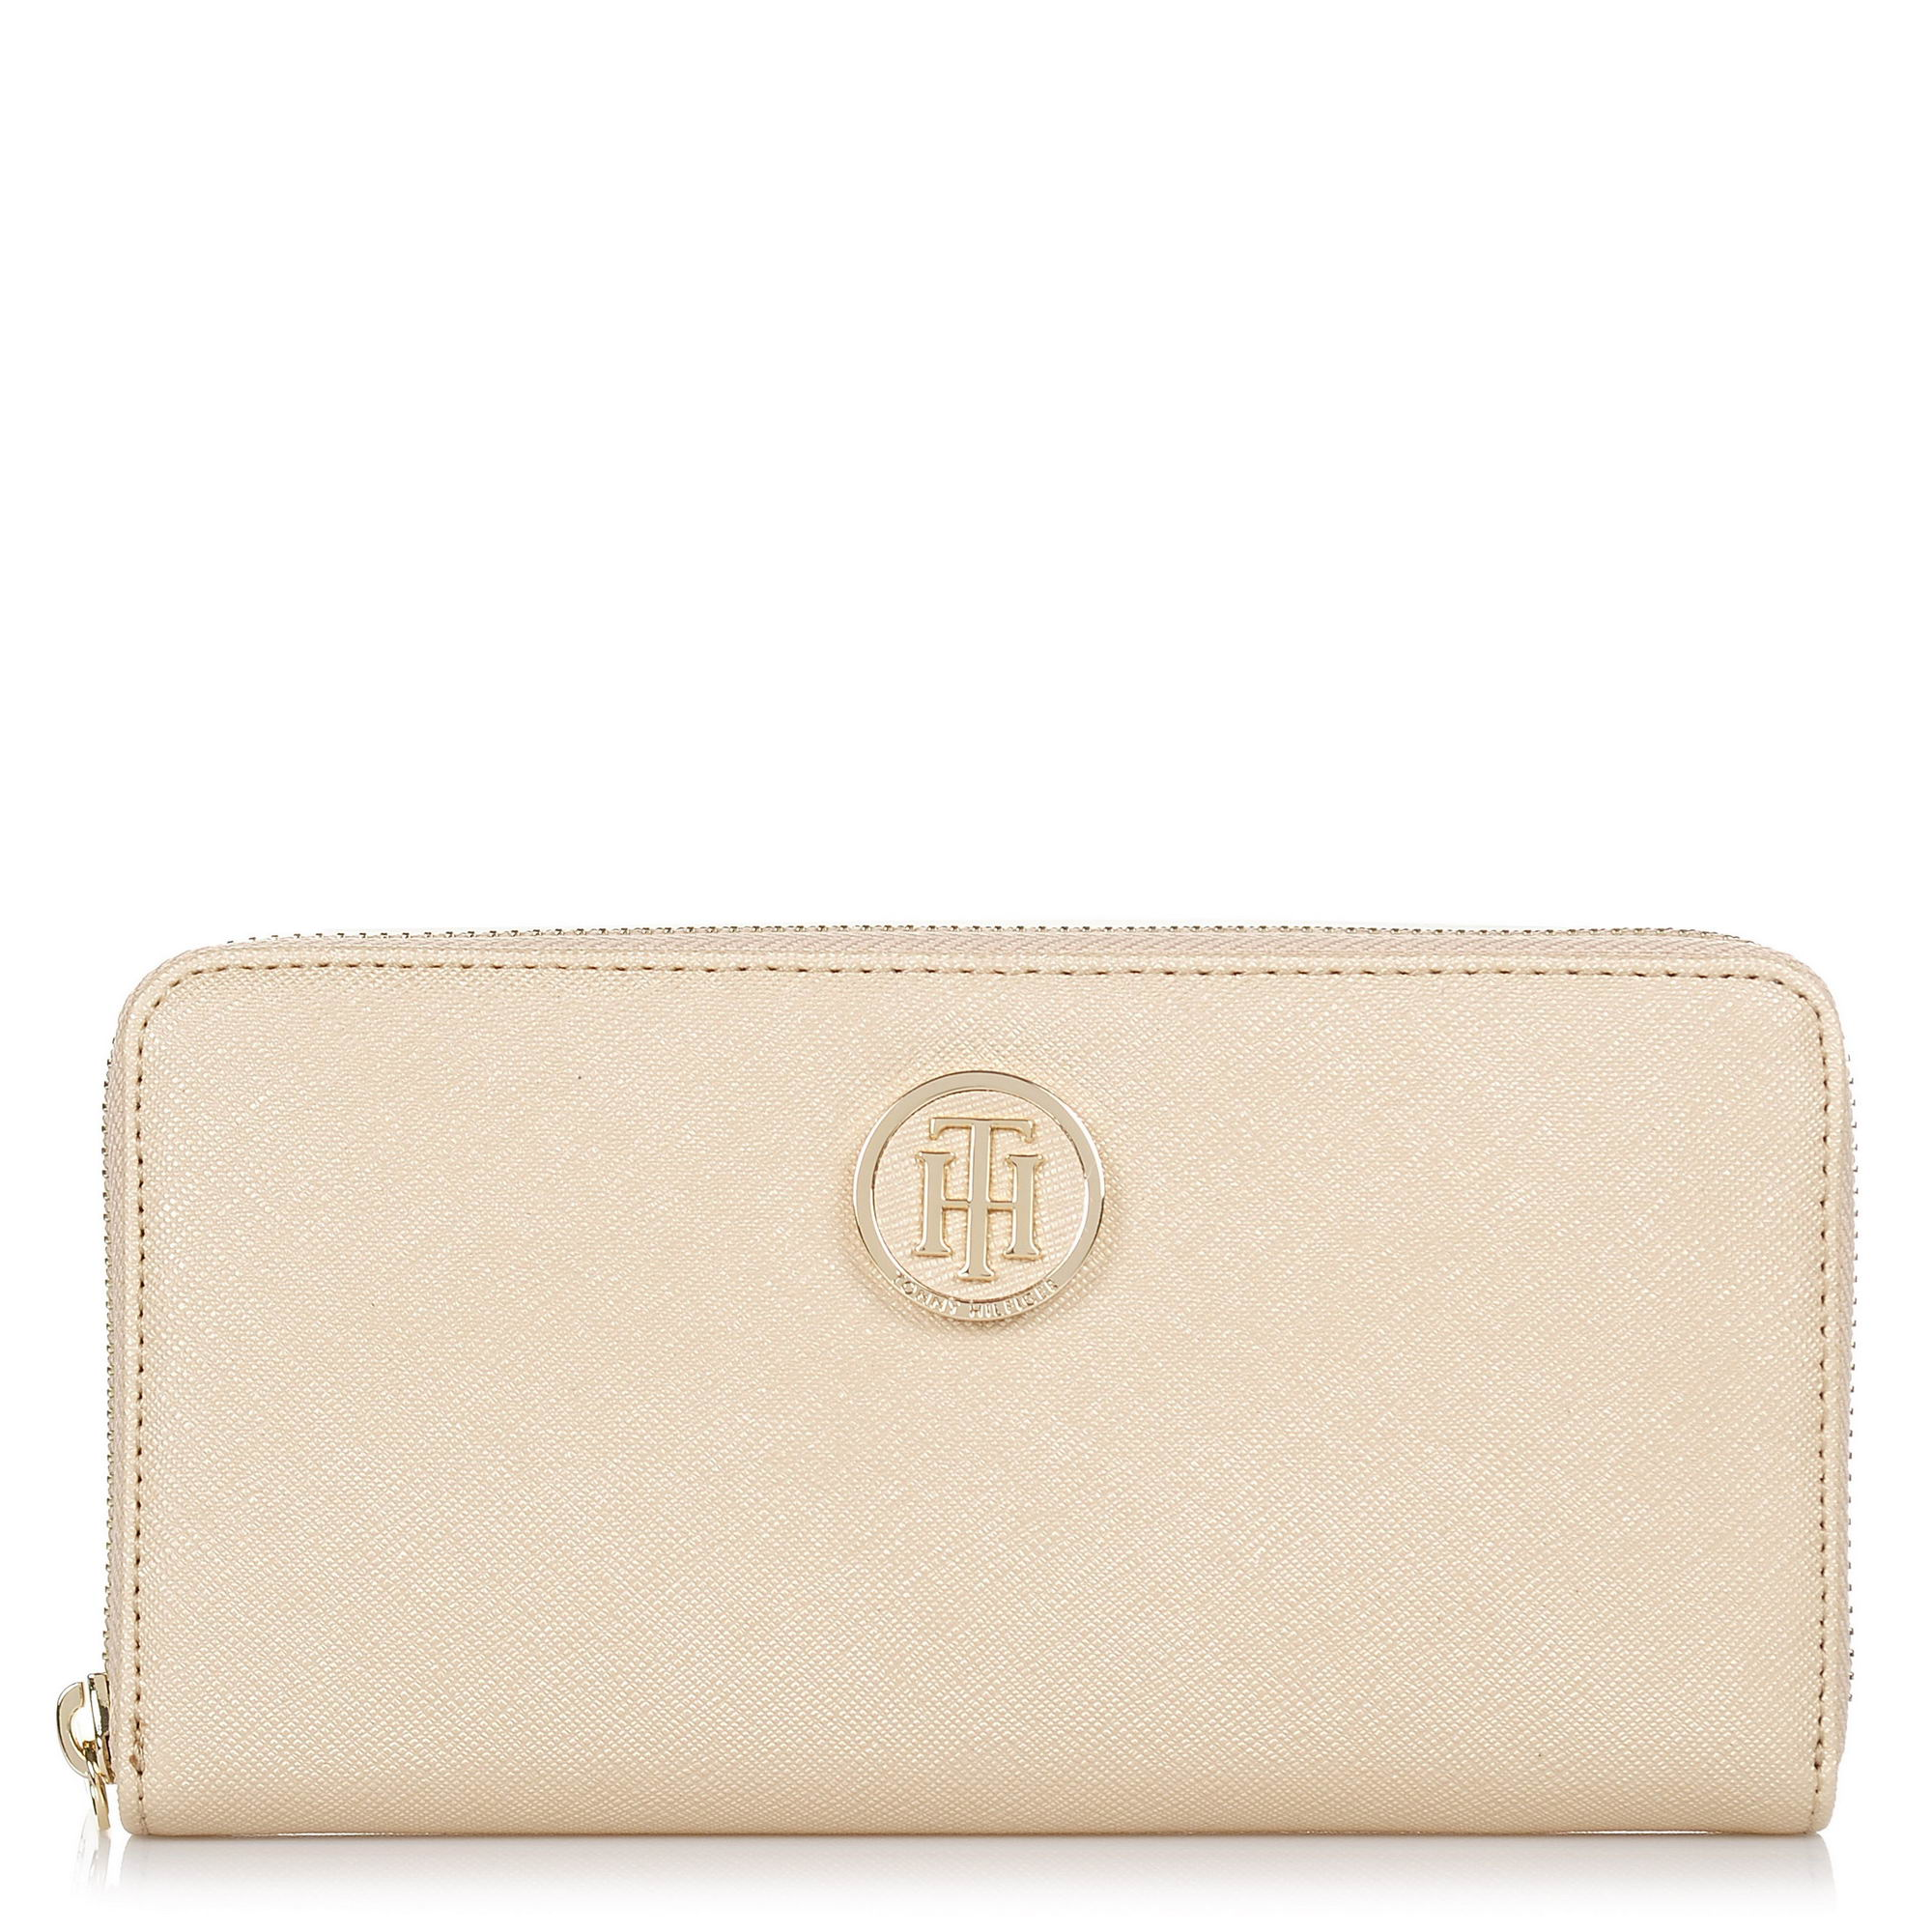 Πορτοφόλι Κασετίνα Tommy Hilfiger Honey Zip Around Wallet AW0AW05185